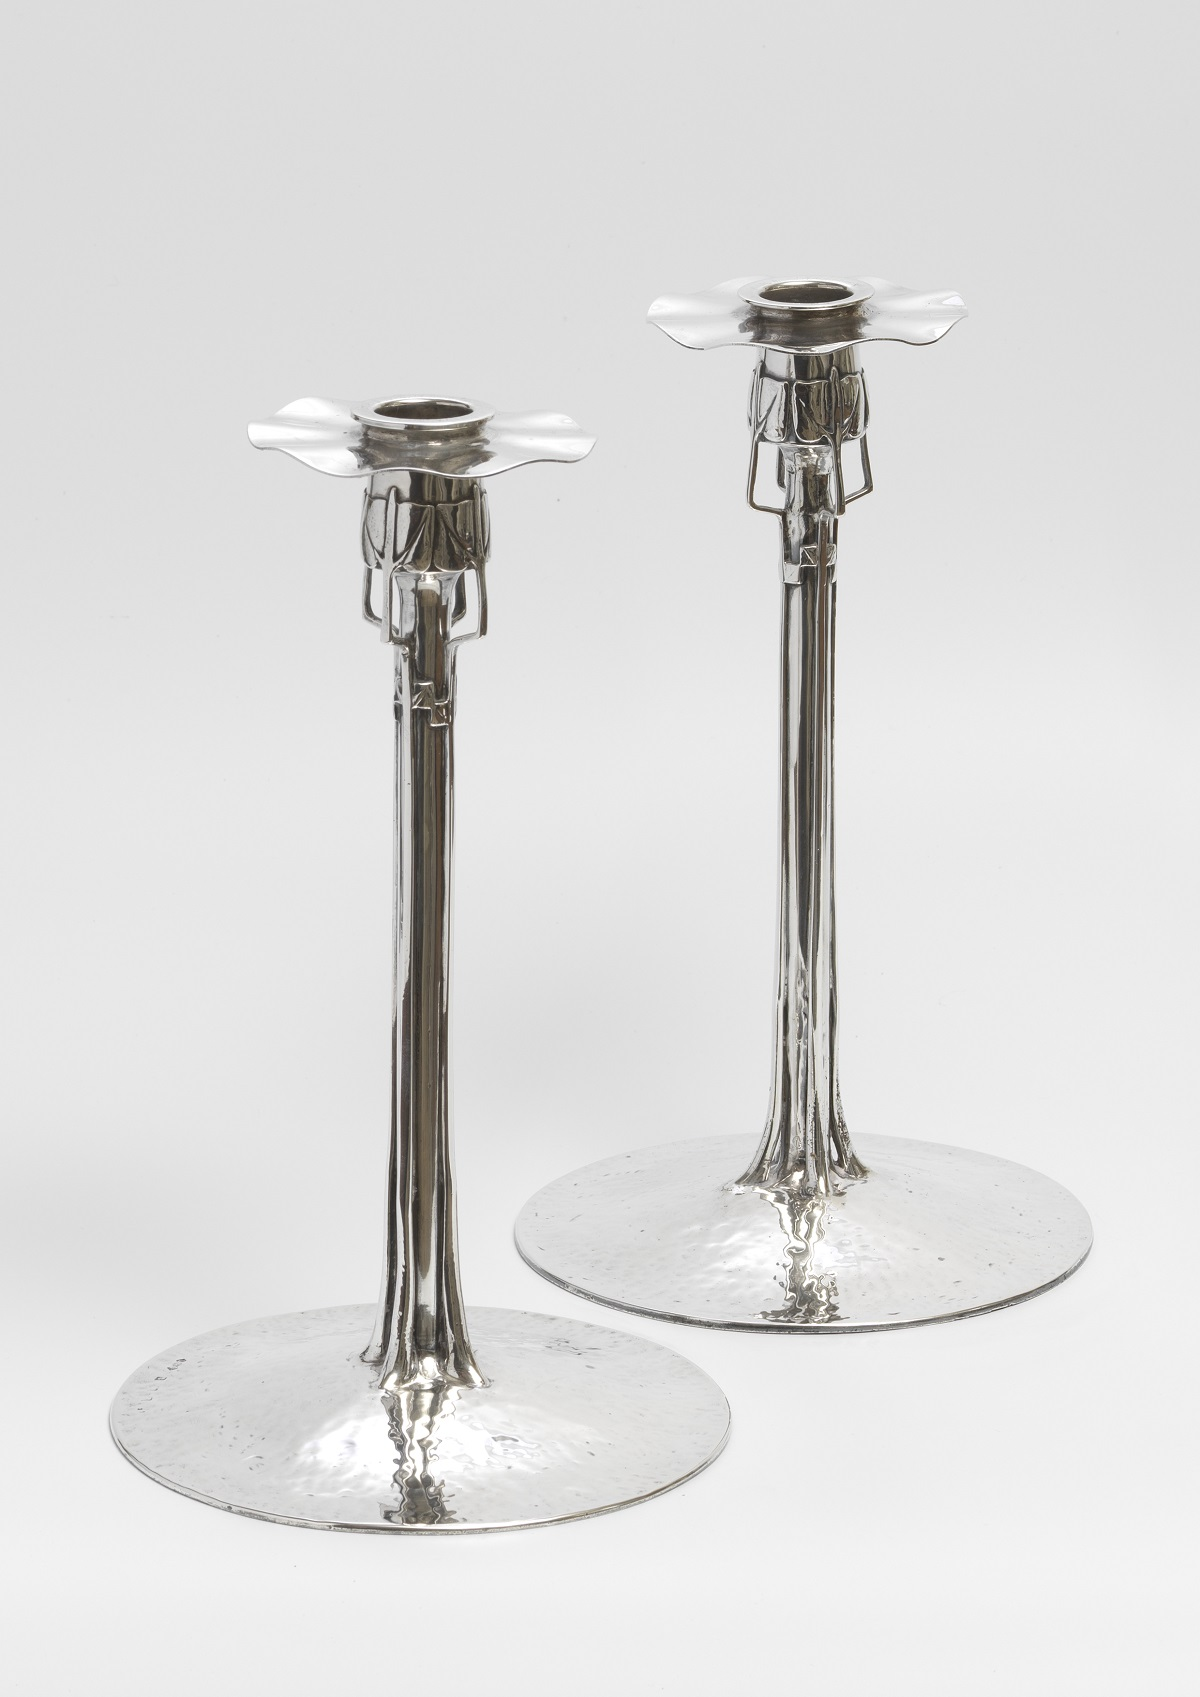 Liberty Cymric Conister candlesticks